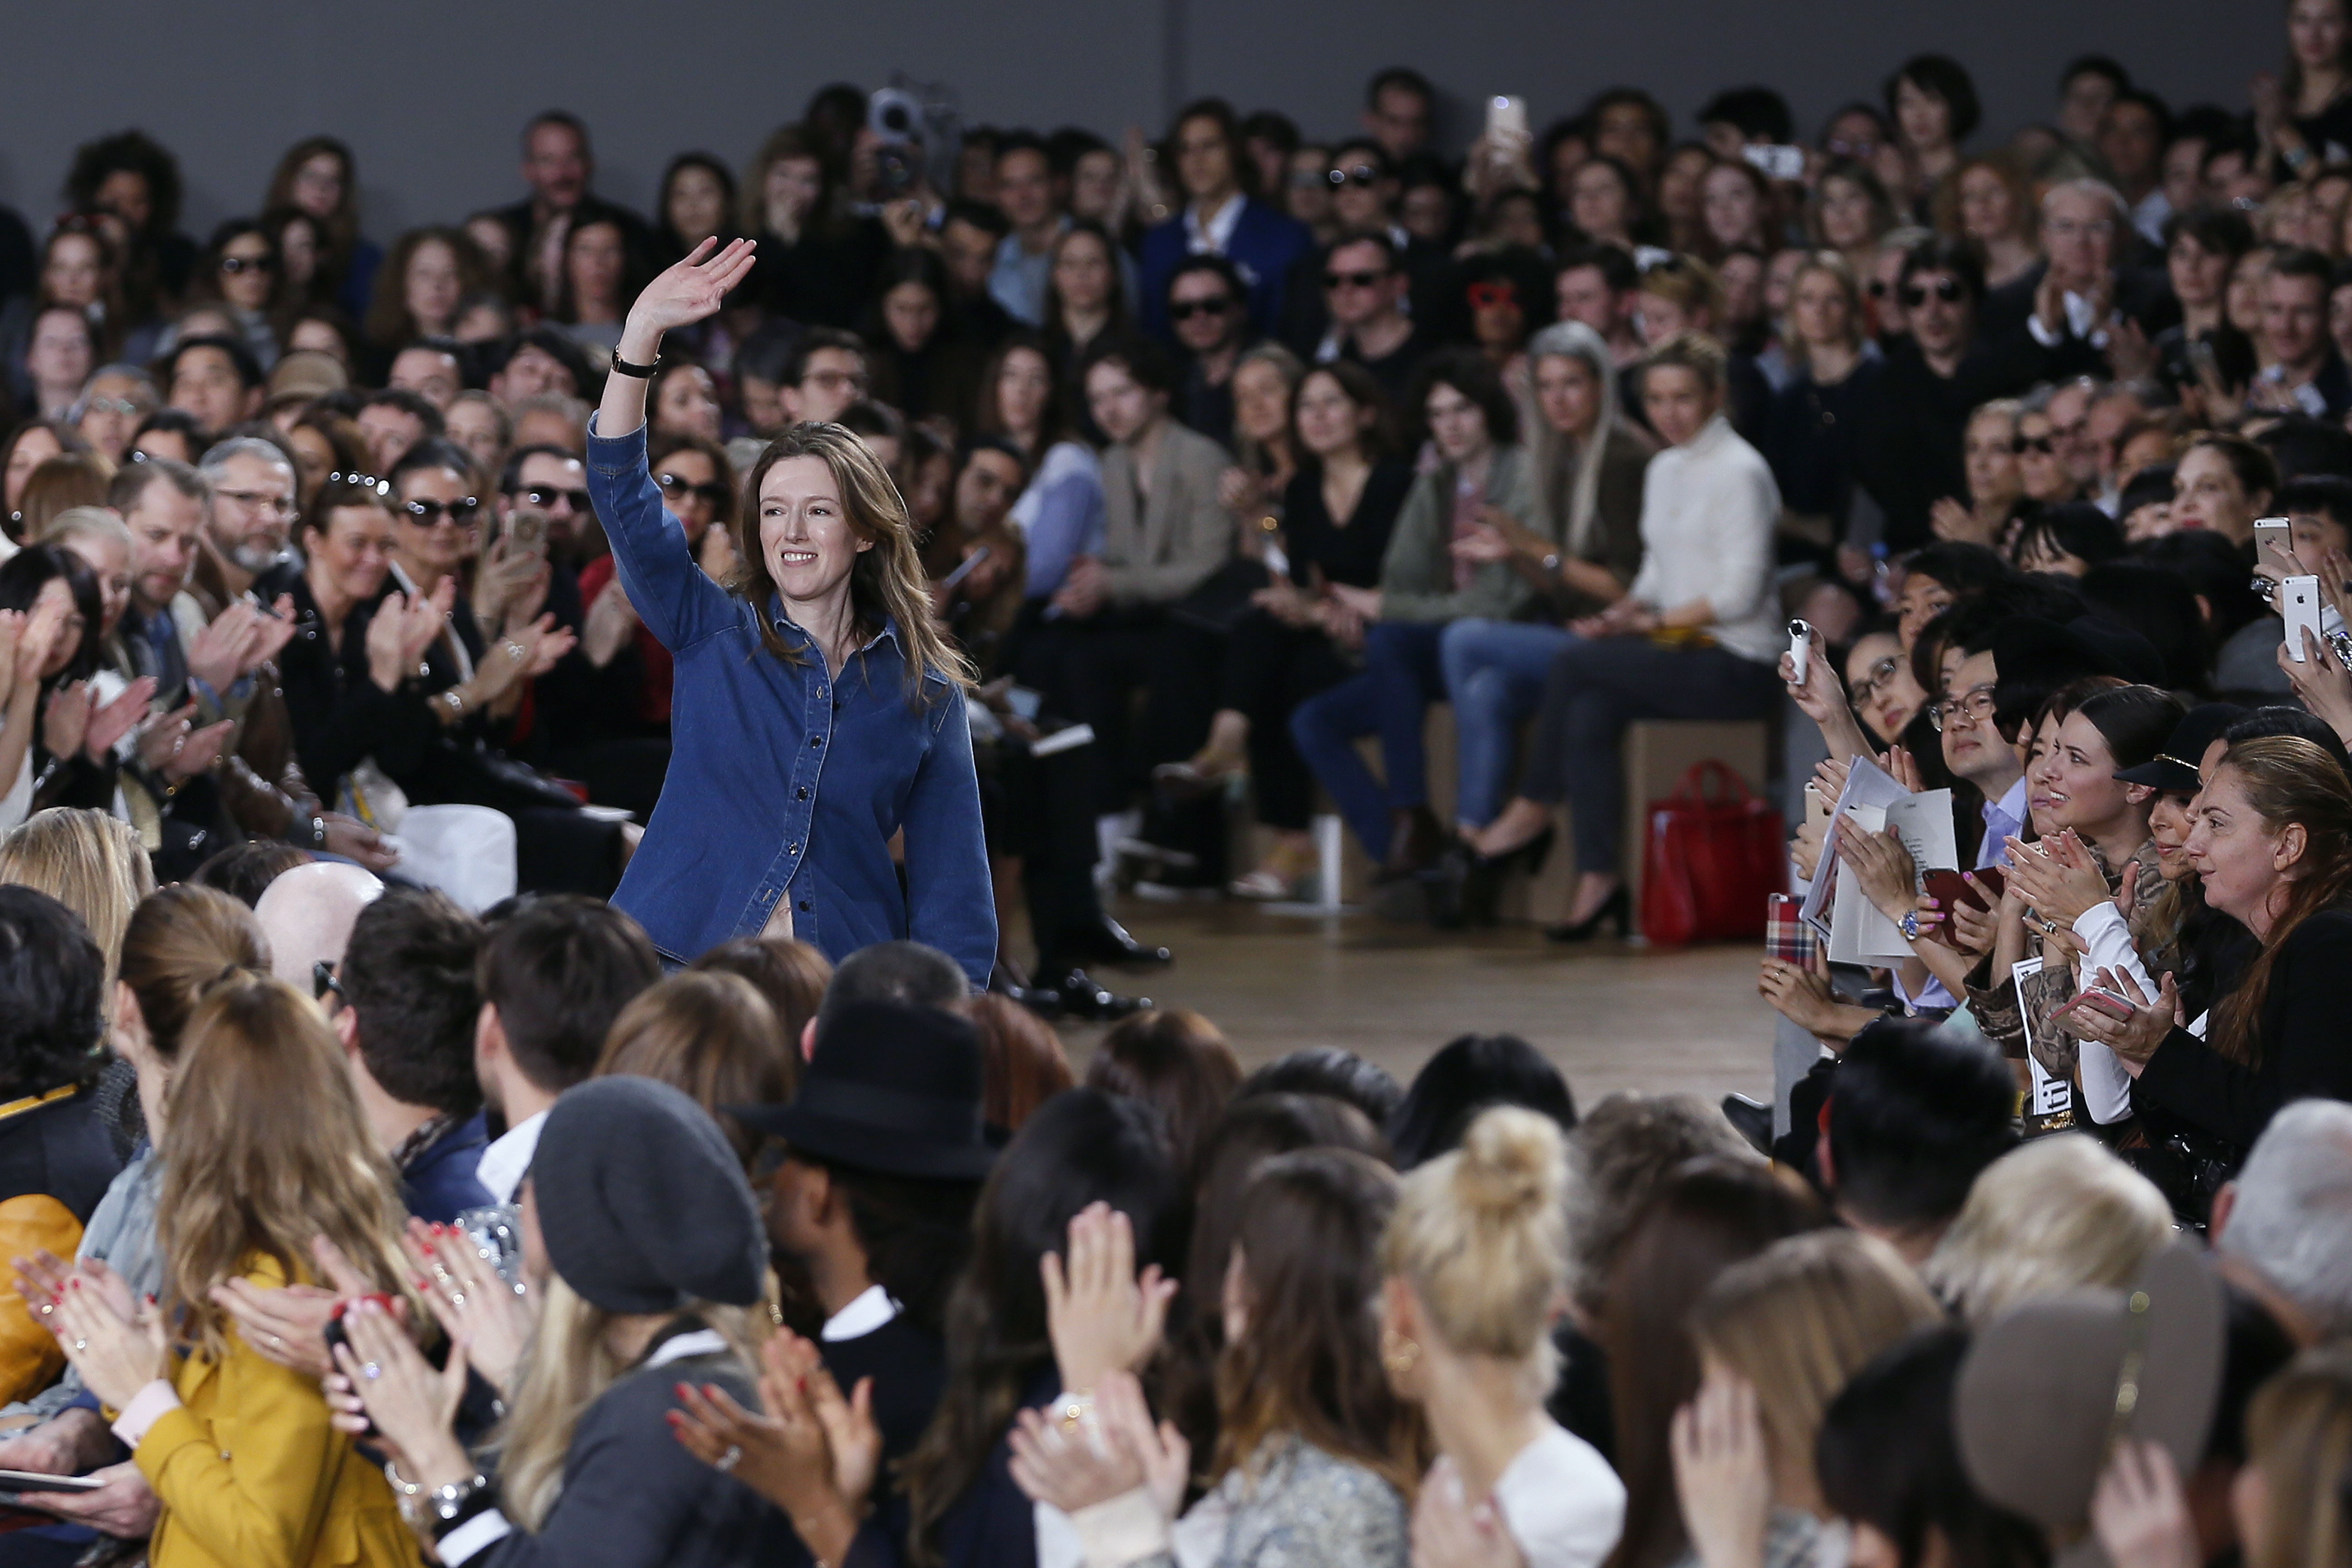 (FILES) This file photo taken on March 08, 2015 shows British fashion designer Clare Waight Keller acknowledging the audience at the end of Chloe the 2015-2016 fall/winter ready-to-wear collection fashion show in Paris.   British designer Clare Waight Keller is to quit Chloe after six years, the French fashion house said January 30, 2017. / AFP PHOTO / PATRICK KOVARIK